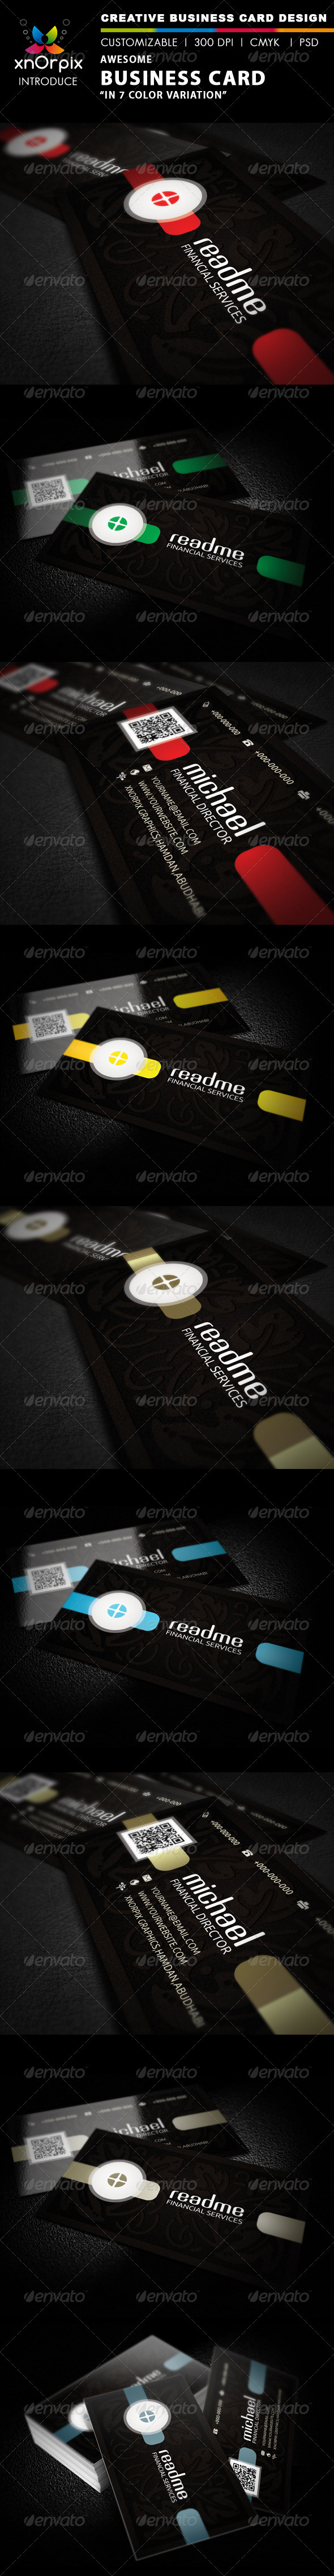 Dark Business Card - Corporate Business Cards